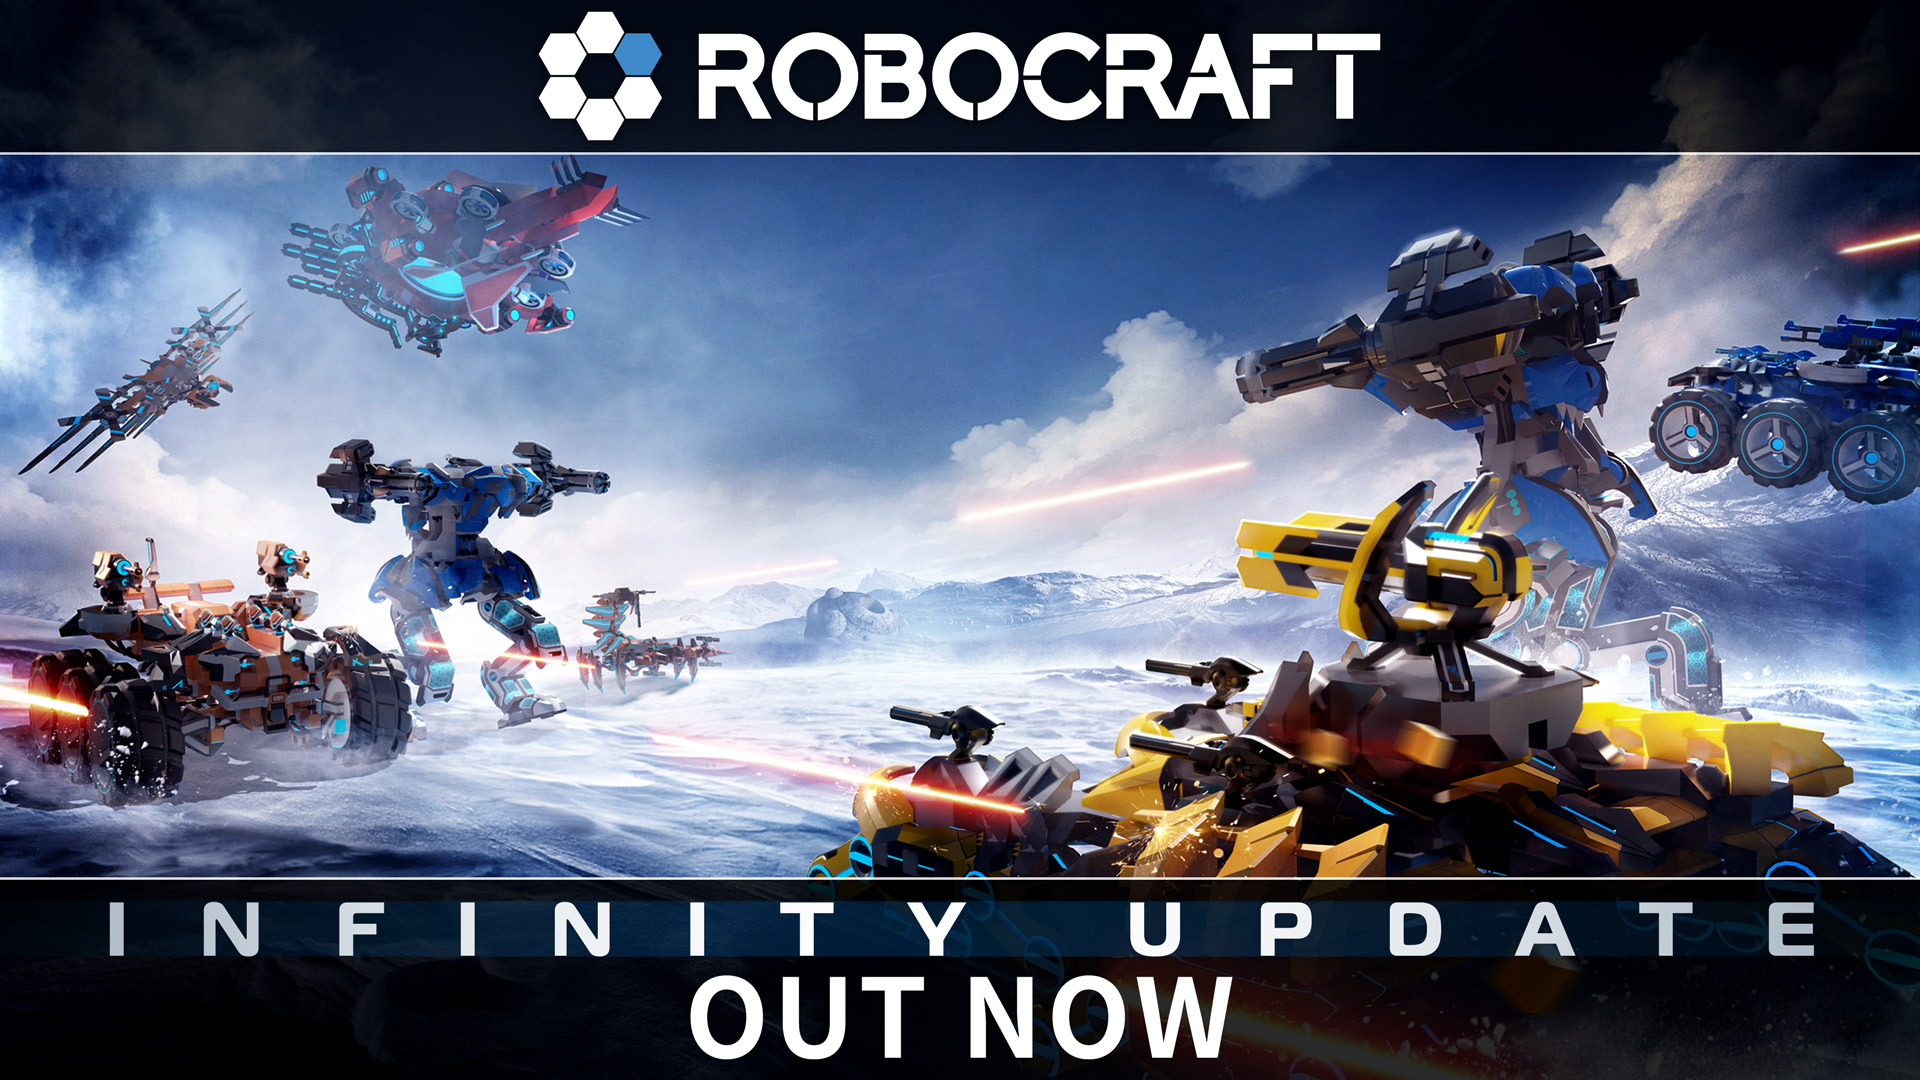 Robocraft is a competitive multiplayer shooter in which players build their own.